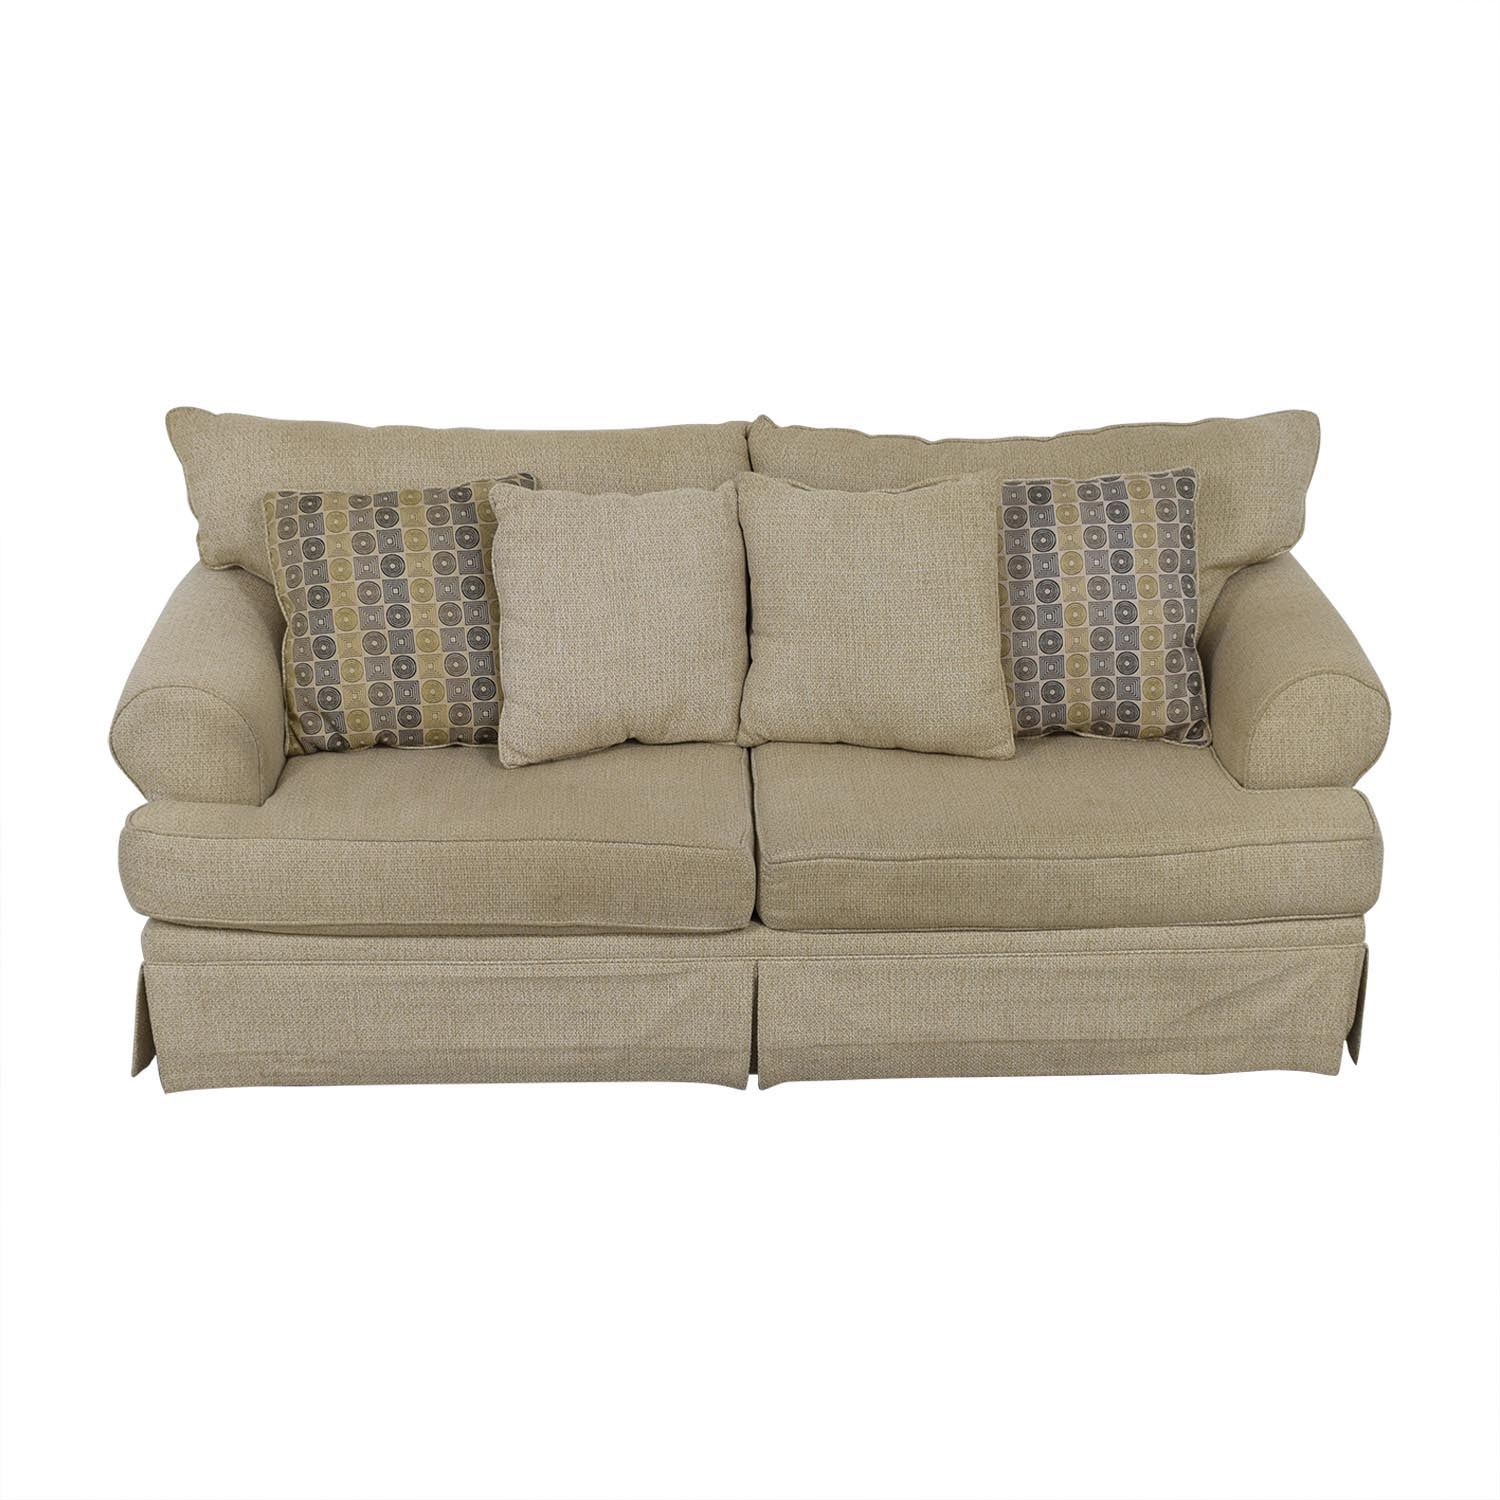 May Furniture May Furniture Stone Tweed Two-Cushion Sofa coupon